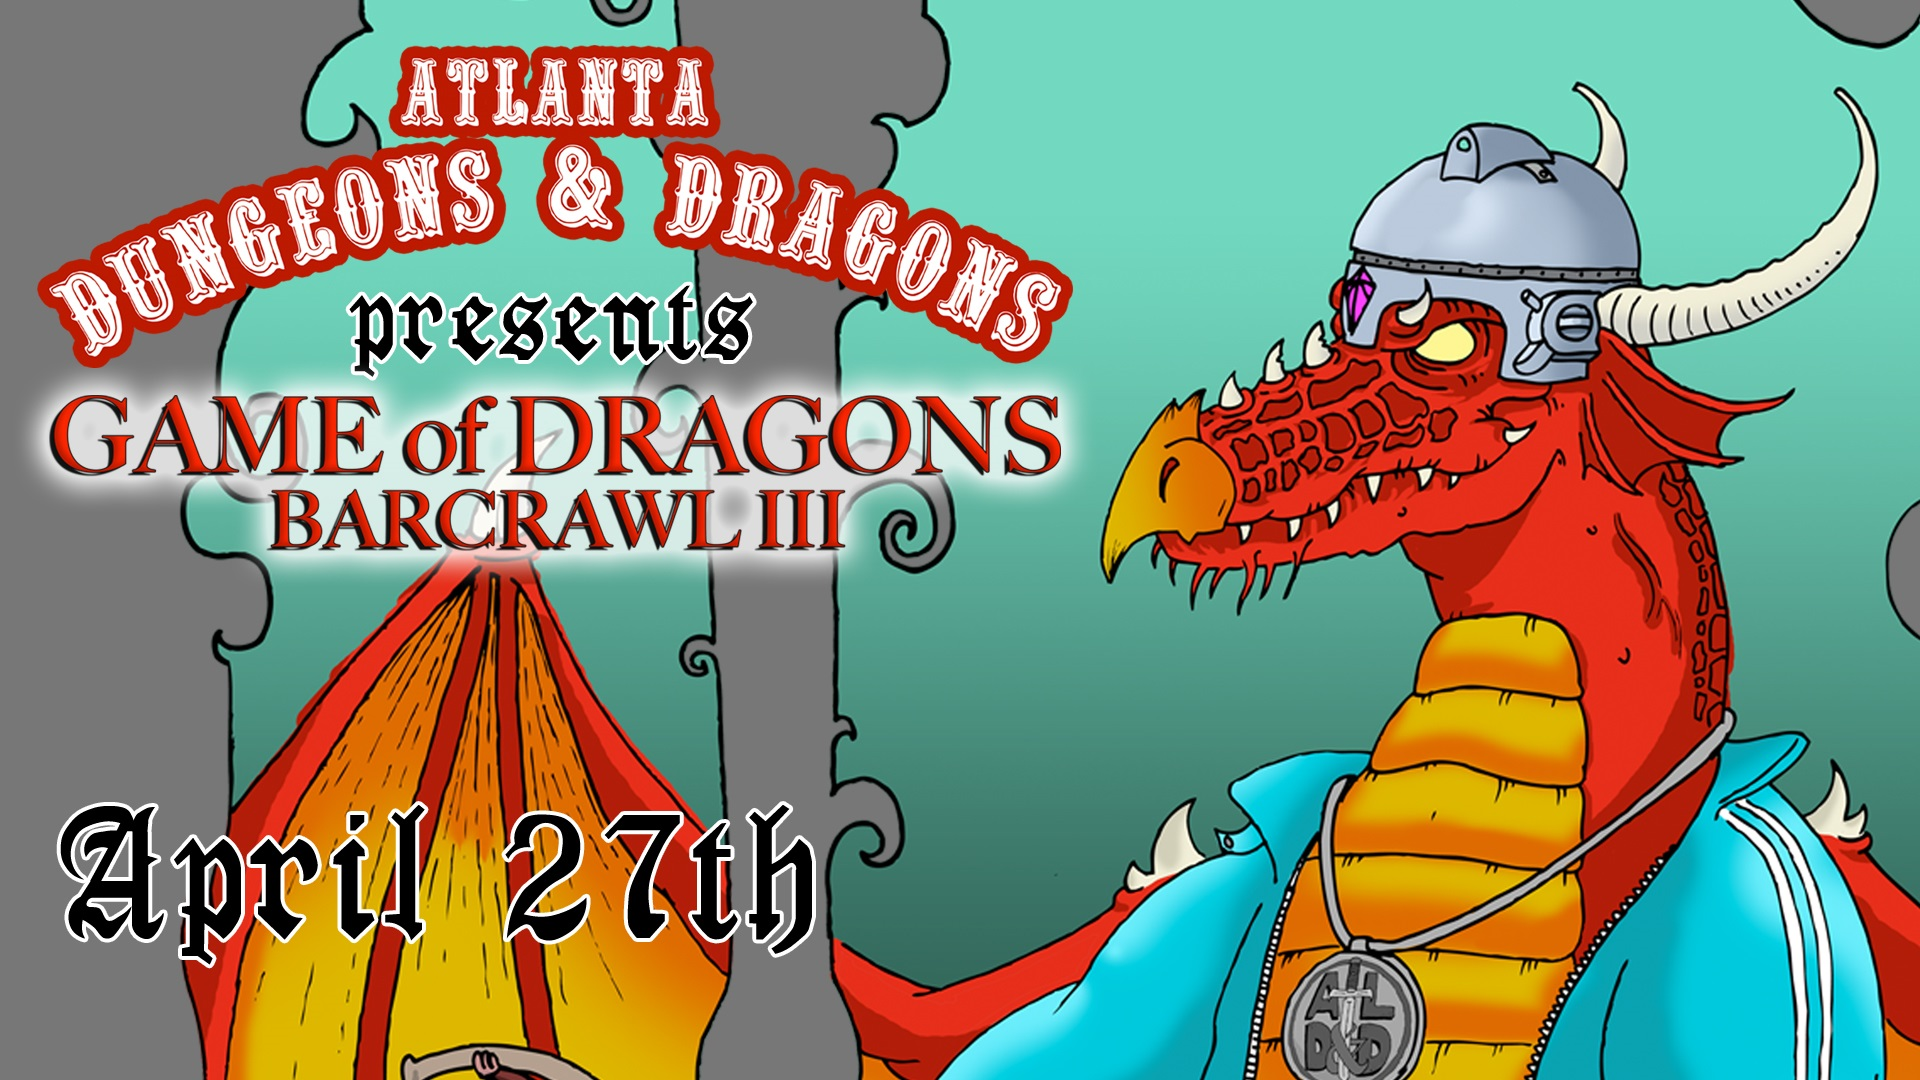 Game of Dragons Barcrawl